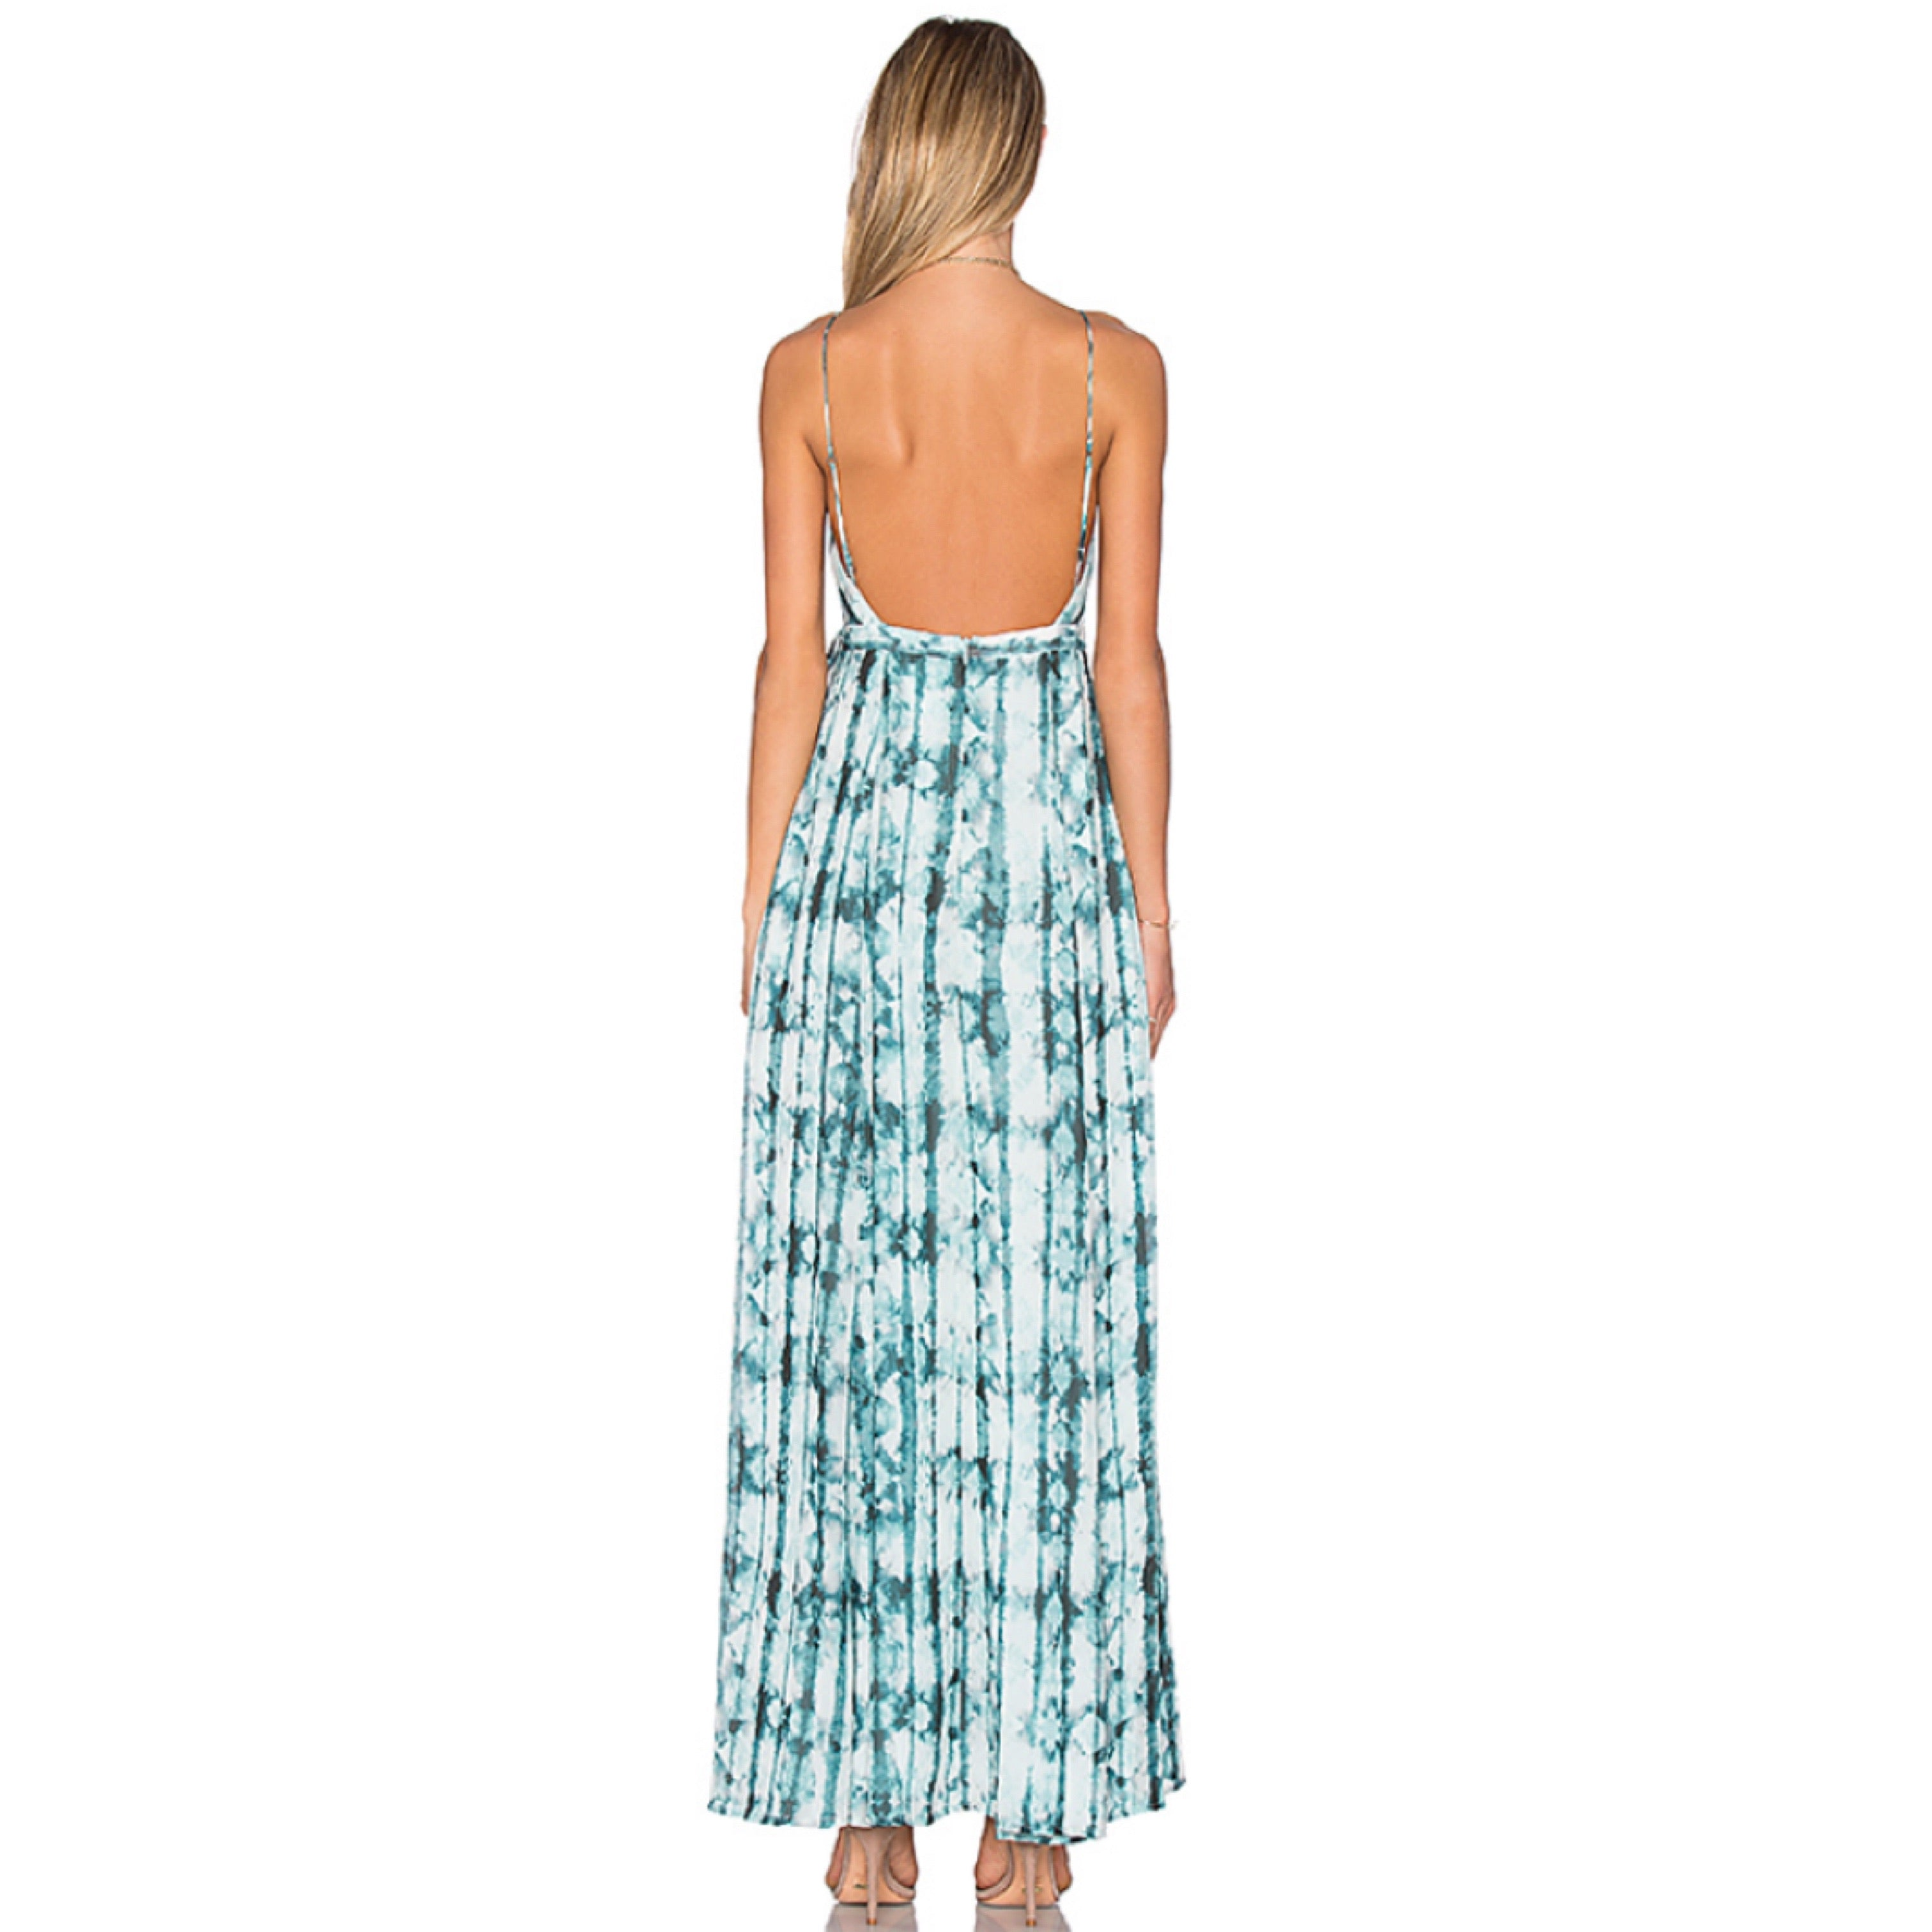 Serpiente Maxi Dress